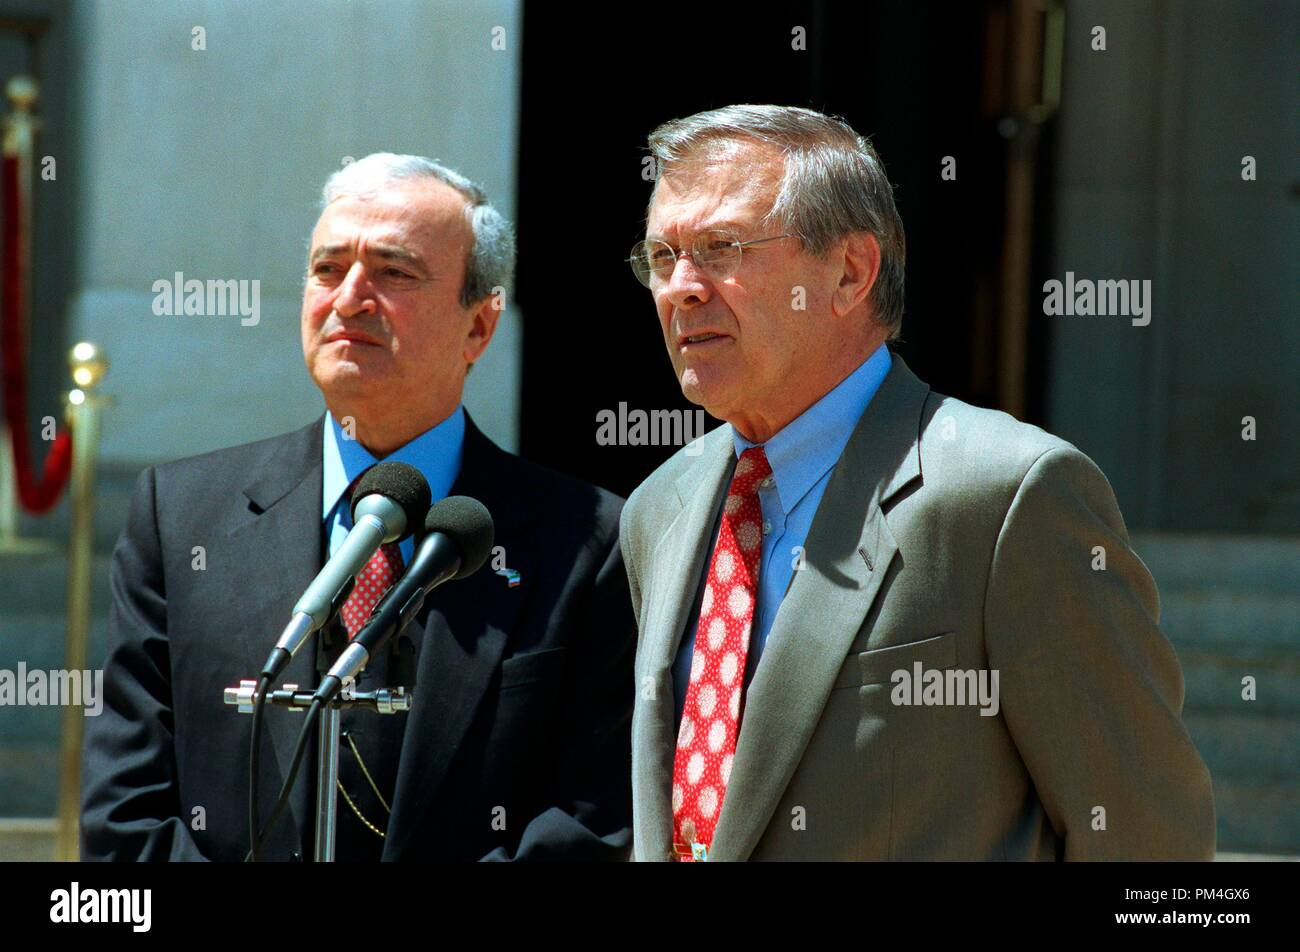 Secretary of Defense Donald H. Rumsfeld (right) responds to reporter's question during a joint press conference with Italian Minister of Defense Antonio Martino at the Pentagon on May 10, 2002. Rumsfeld and Martino met earlier to discuss defense issues of mutual interest. DoD photo by Helene C. Stikkel. (Released) Date: September 19, 2010  File Reference # 1003_129THA - Stock Image